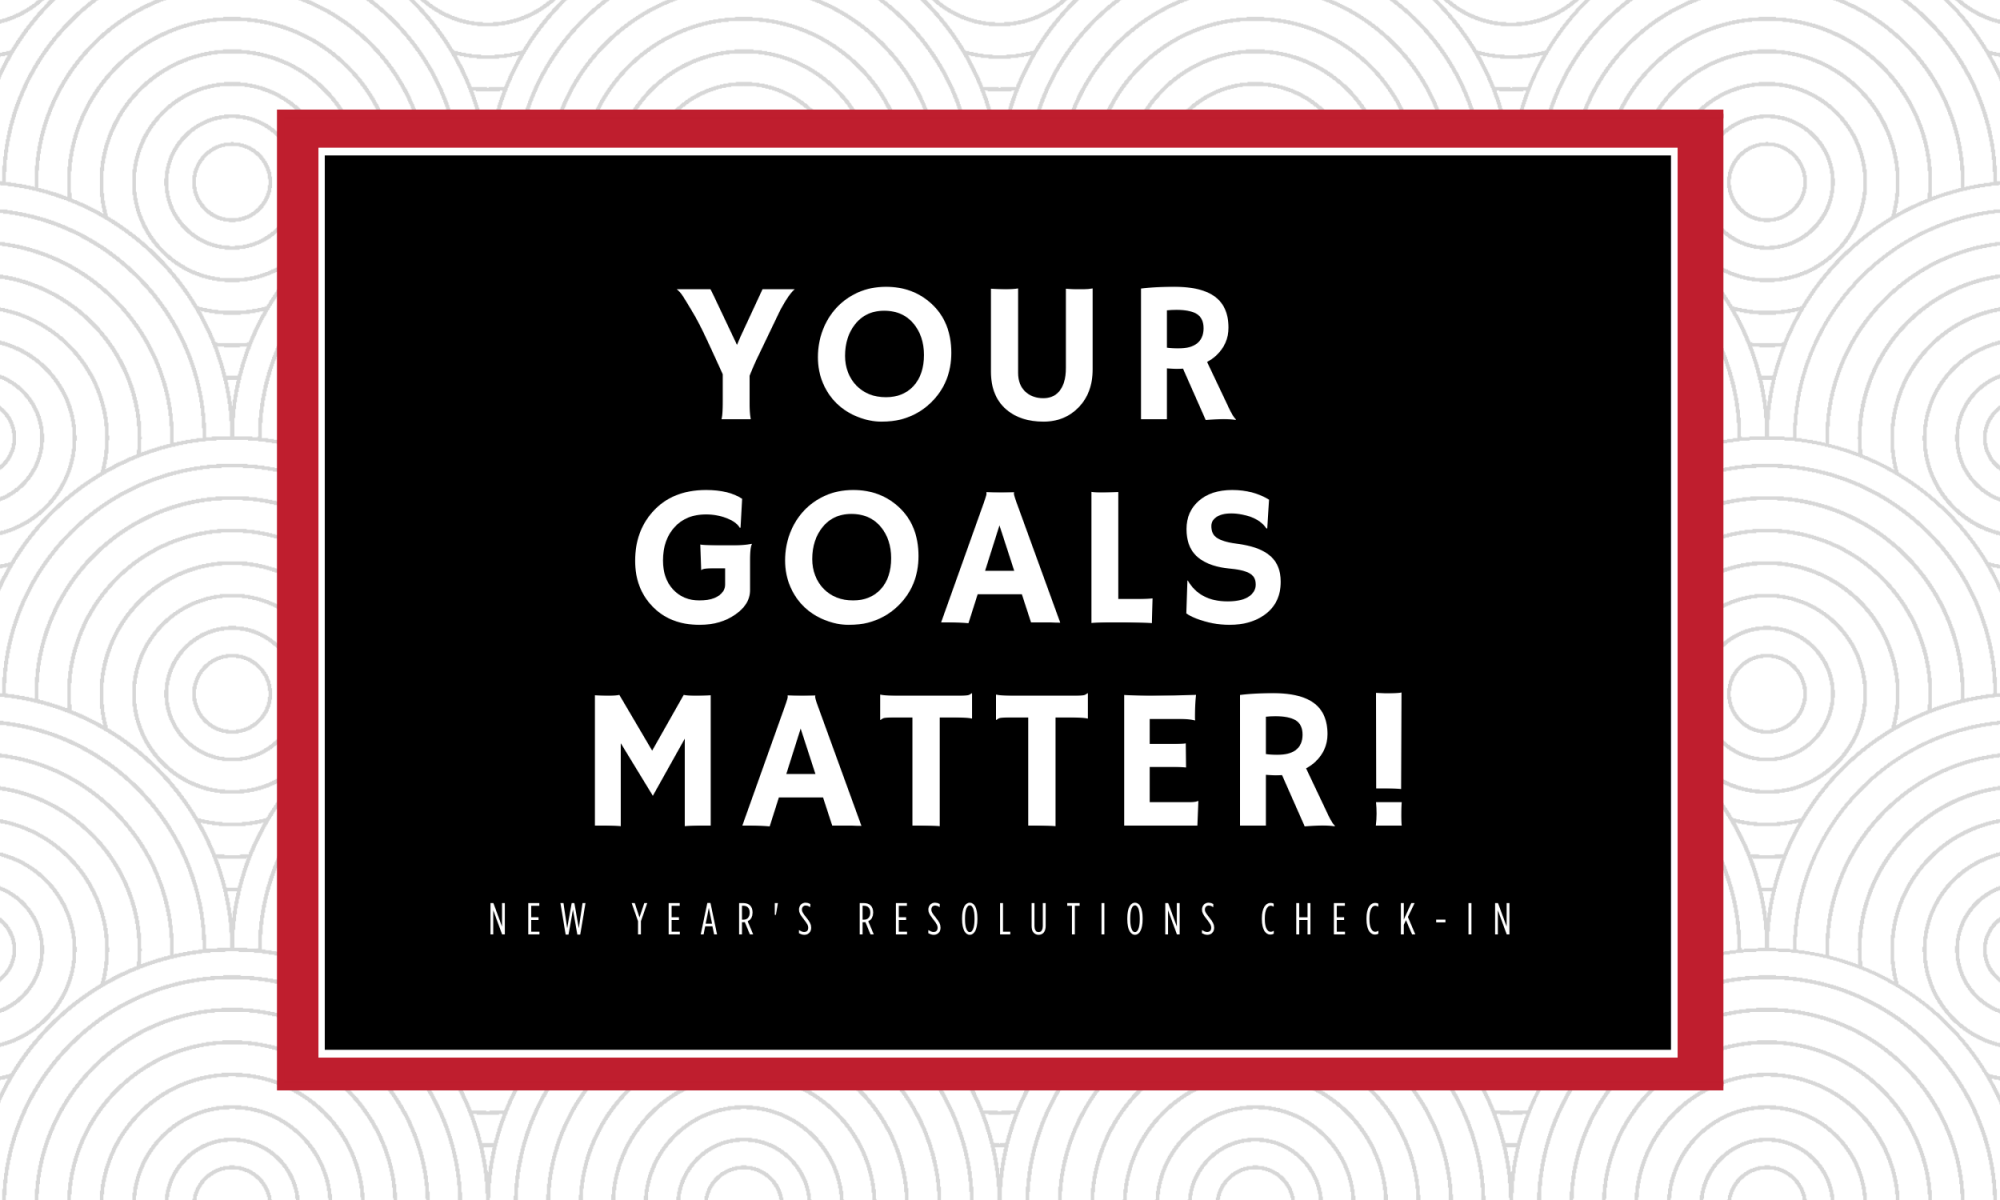 Yout Goals Matter. New Year's Resolutions Check-in